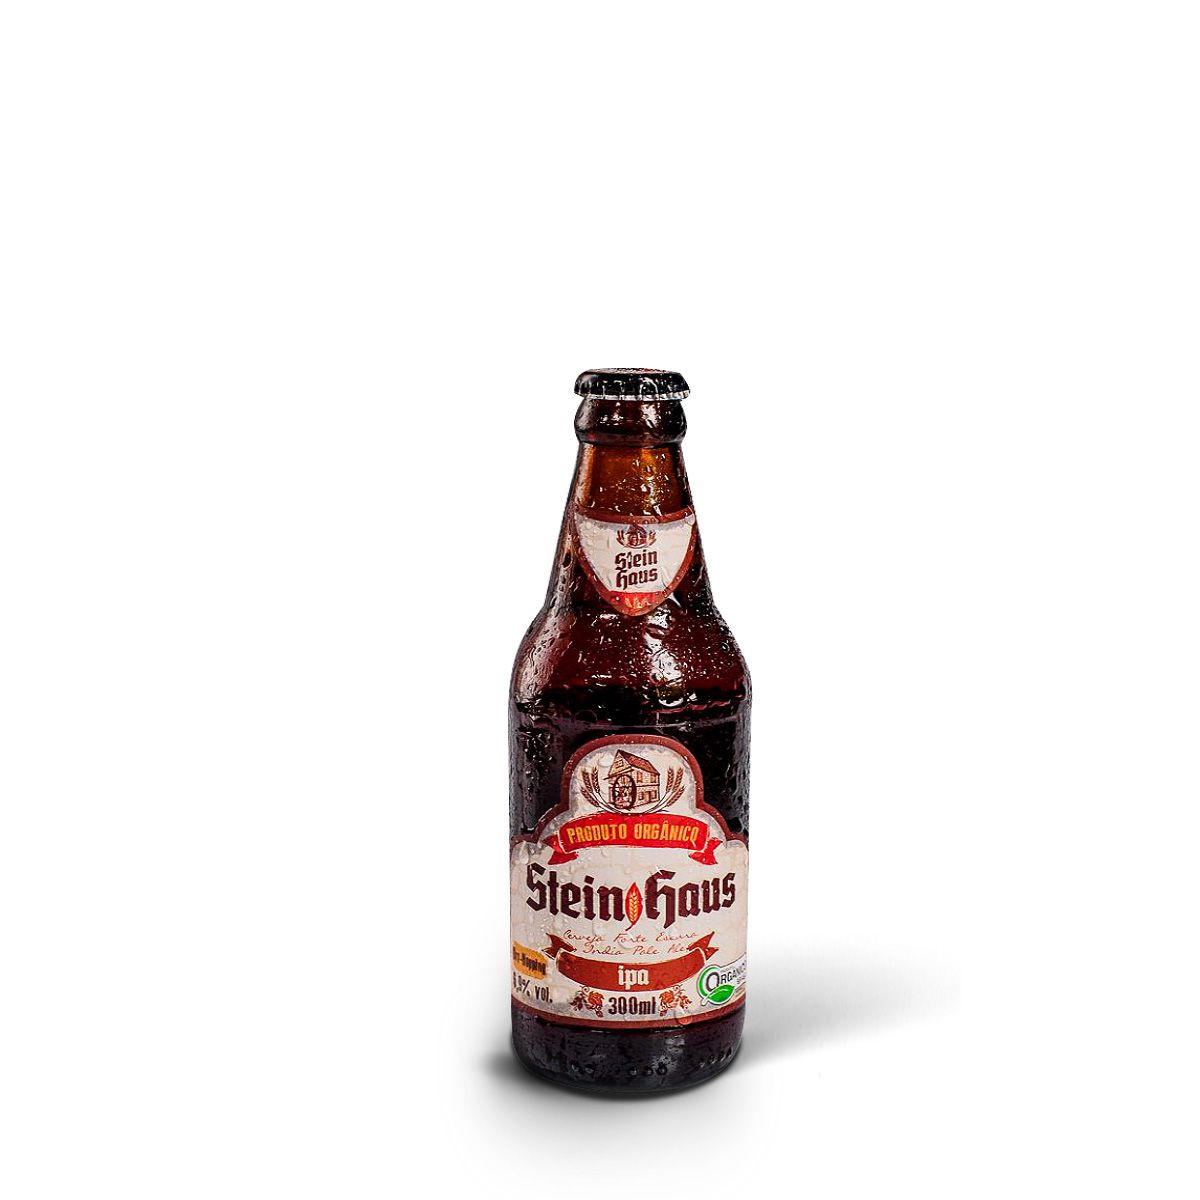 SteinHaus Orgânica India Pale Ale IPA 300ml